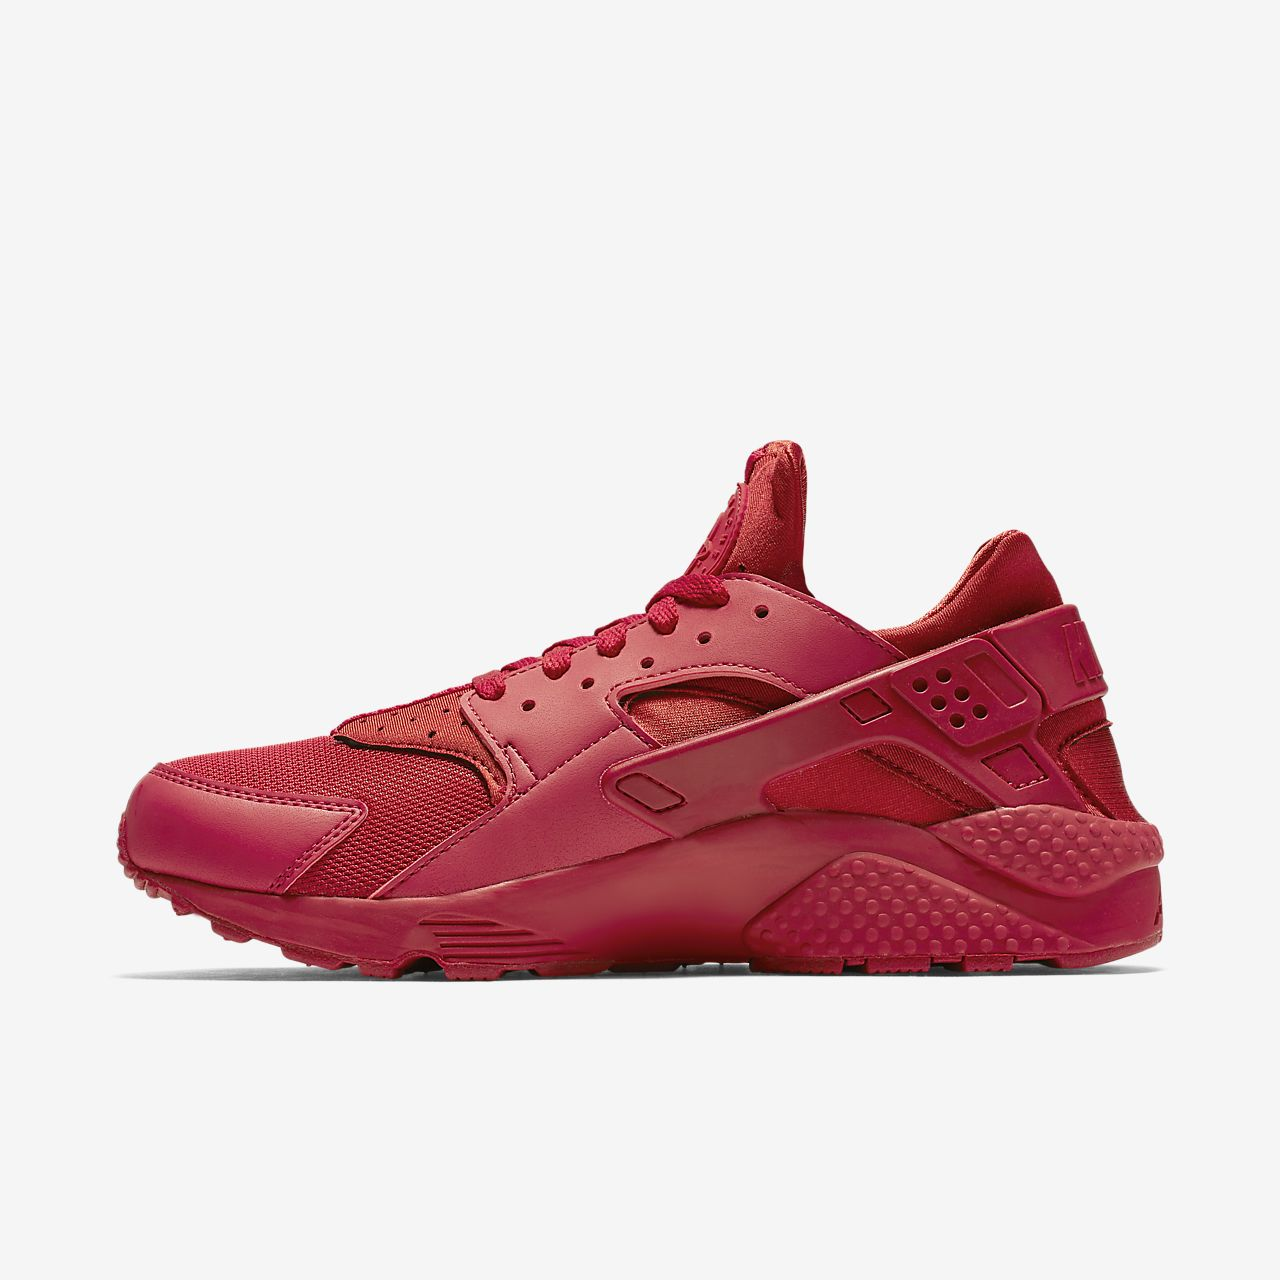 9e0fbfb28843 Nike Air Huarache Men s Shoe. Nike.com